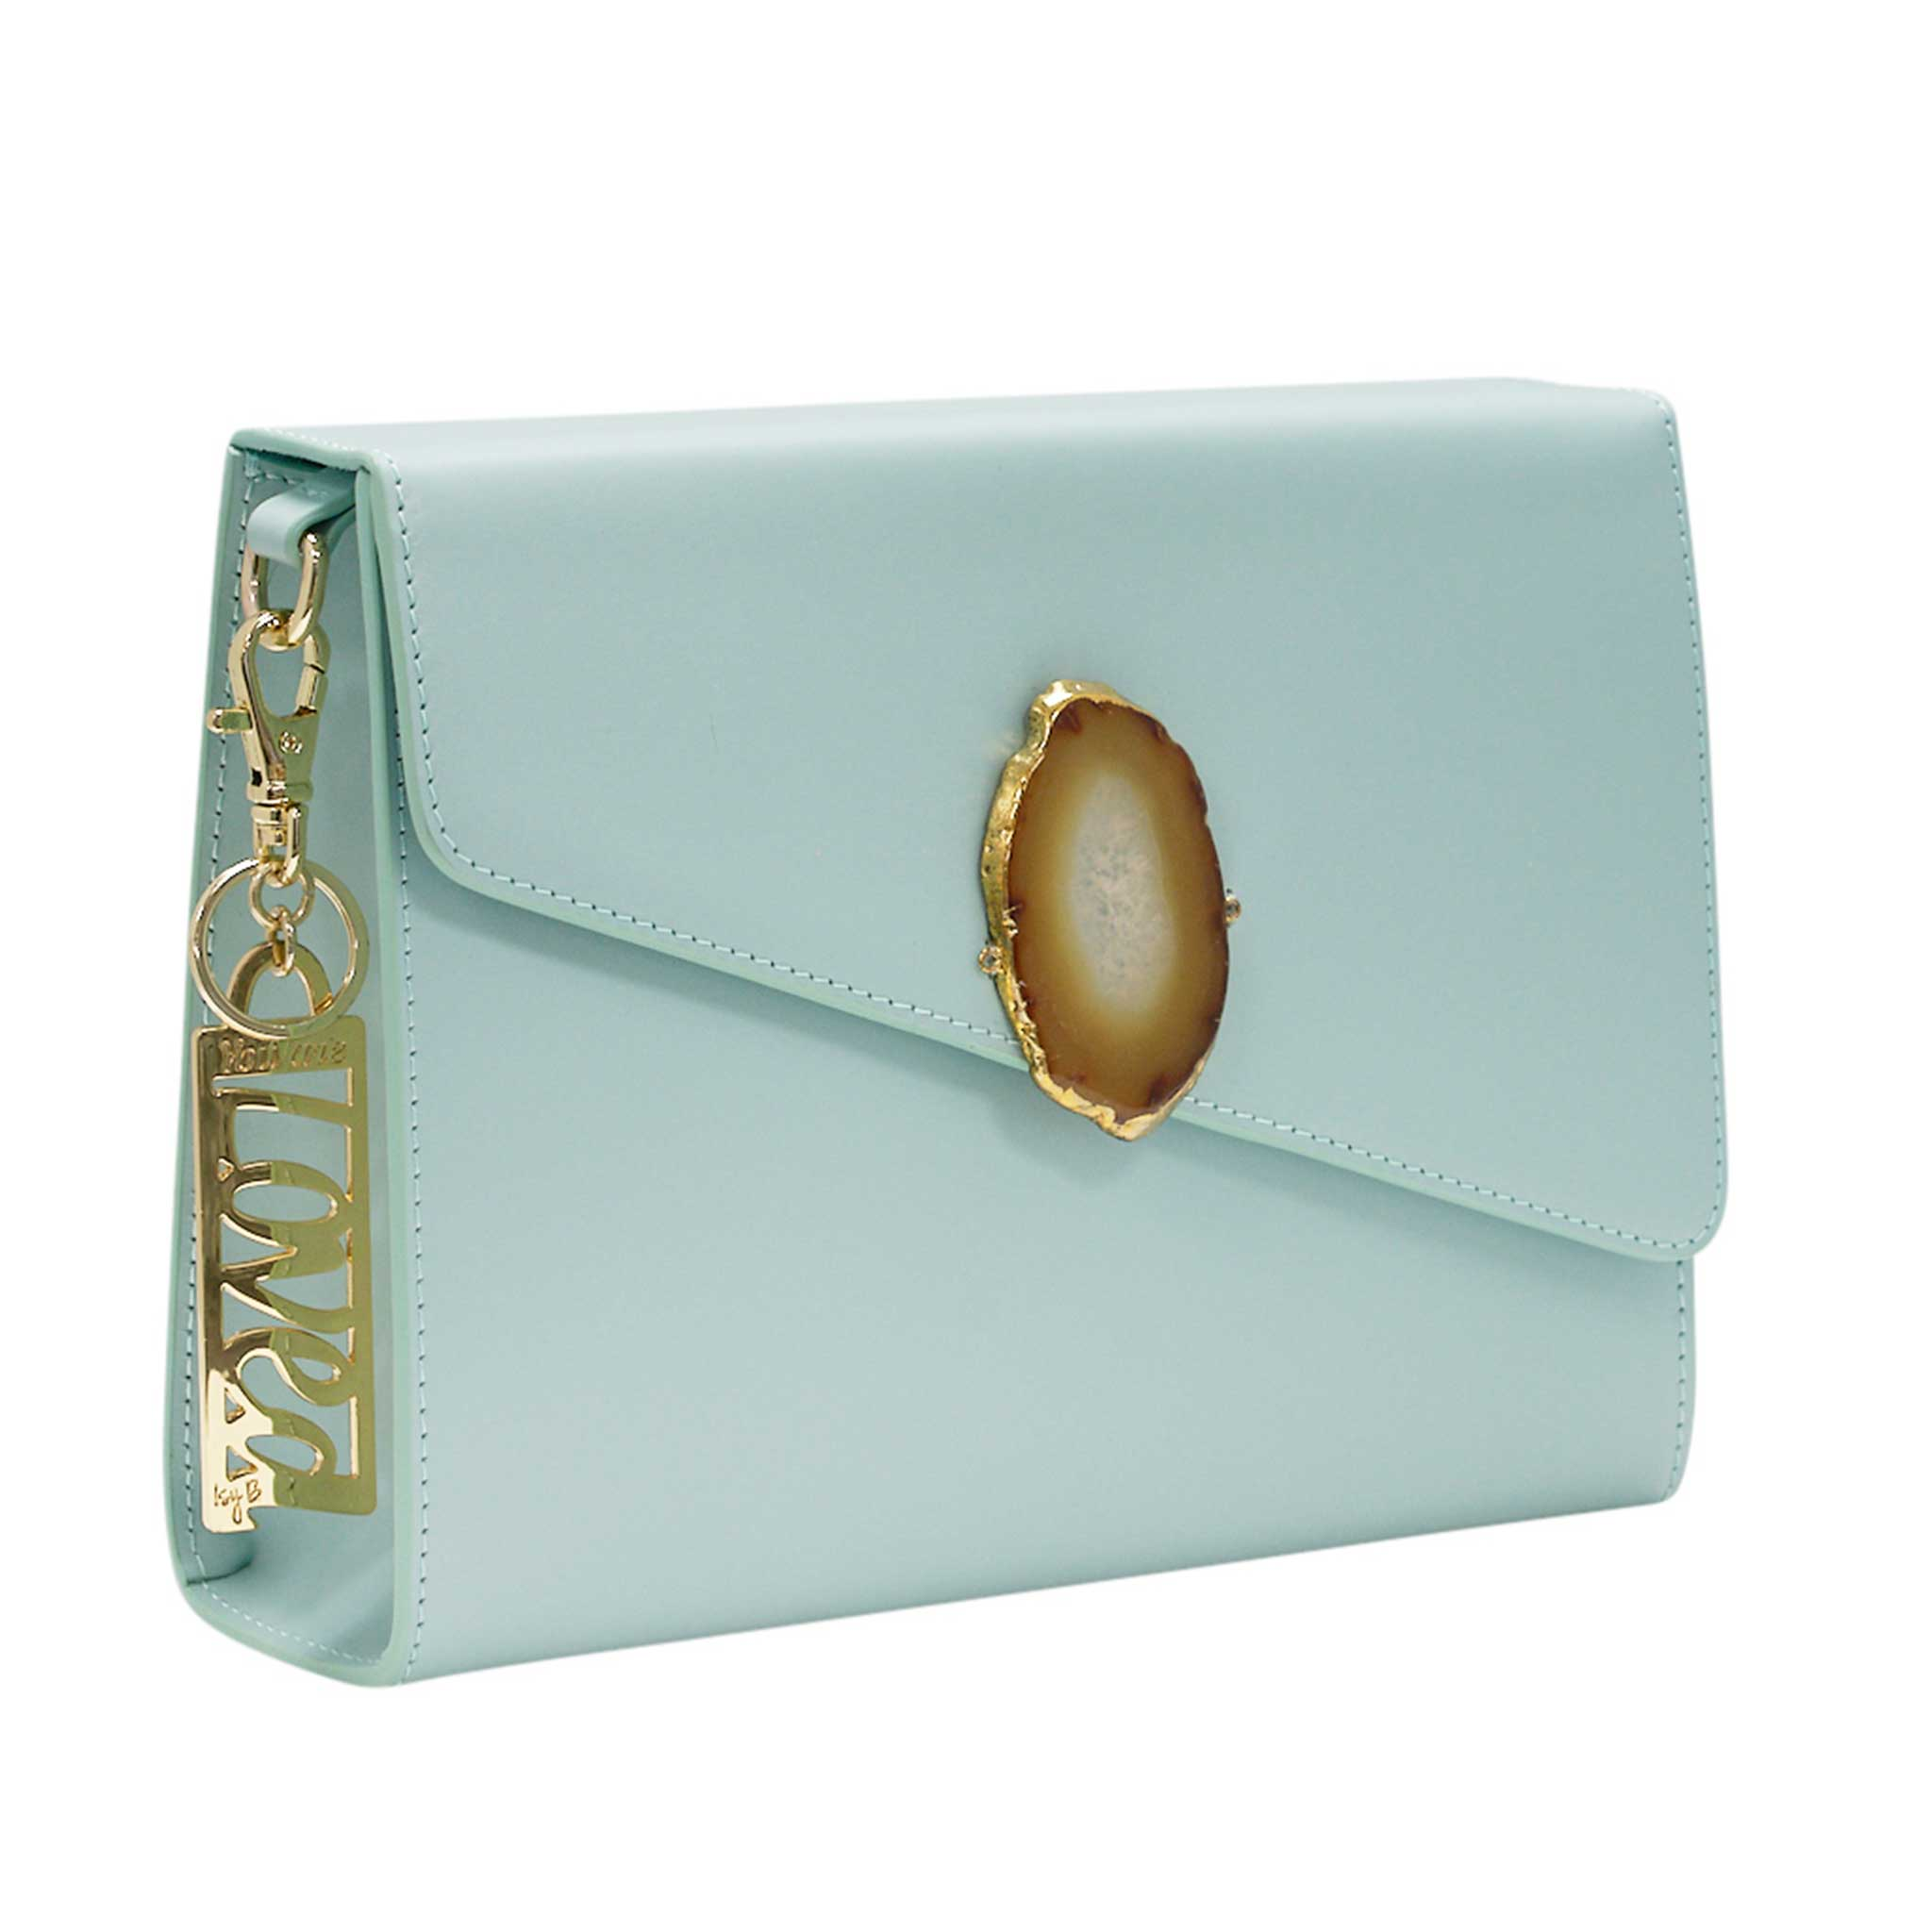 LOVED BAG - MOONSTONE WHITE LEATHER WITH YELLOW AGATE - 1.02.001.039